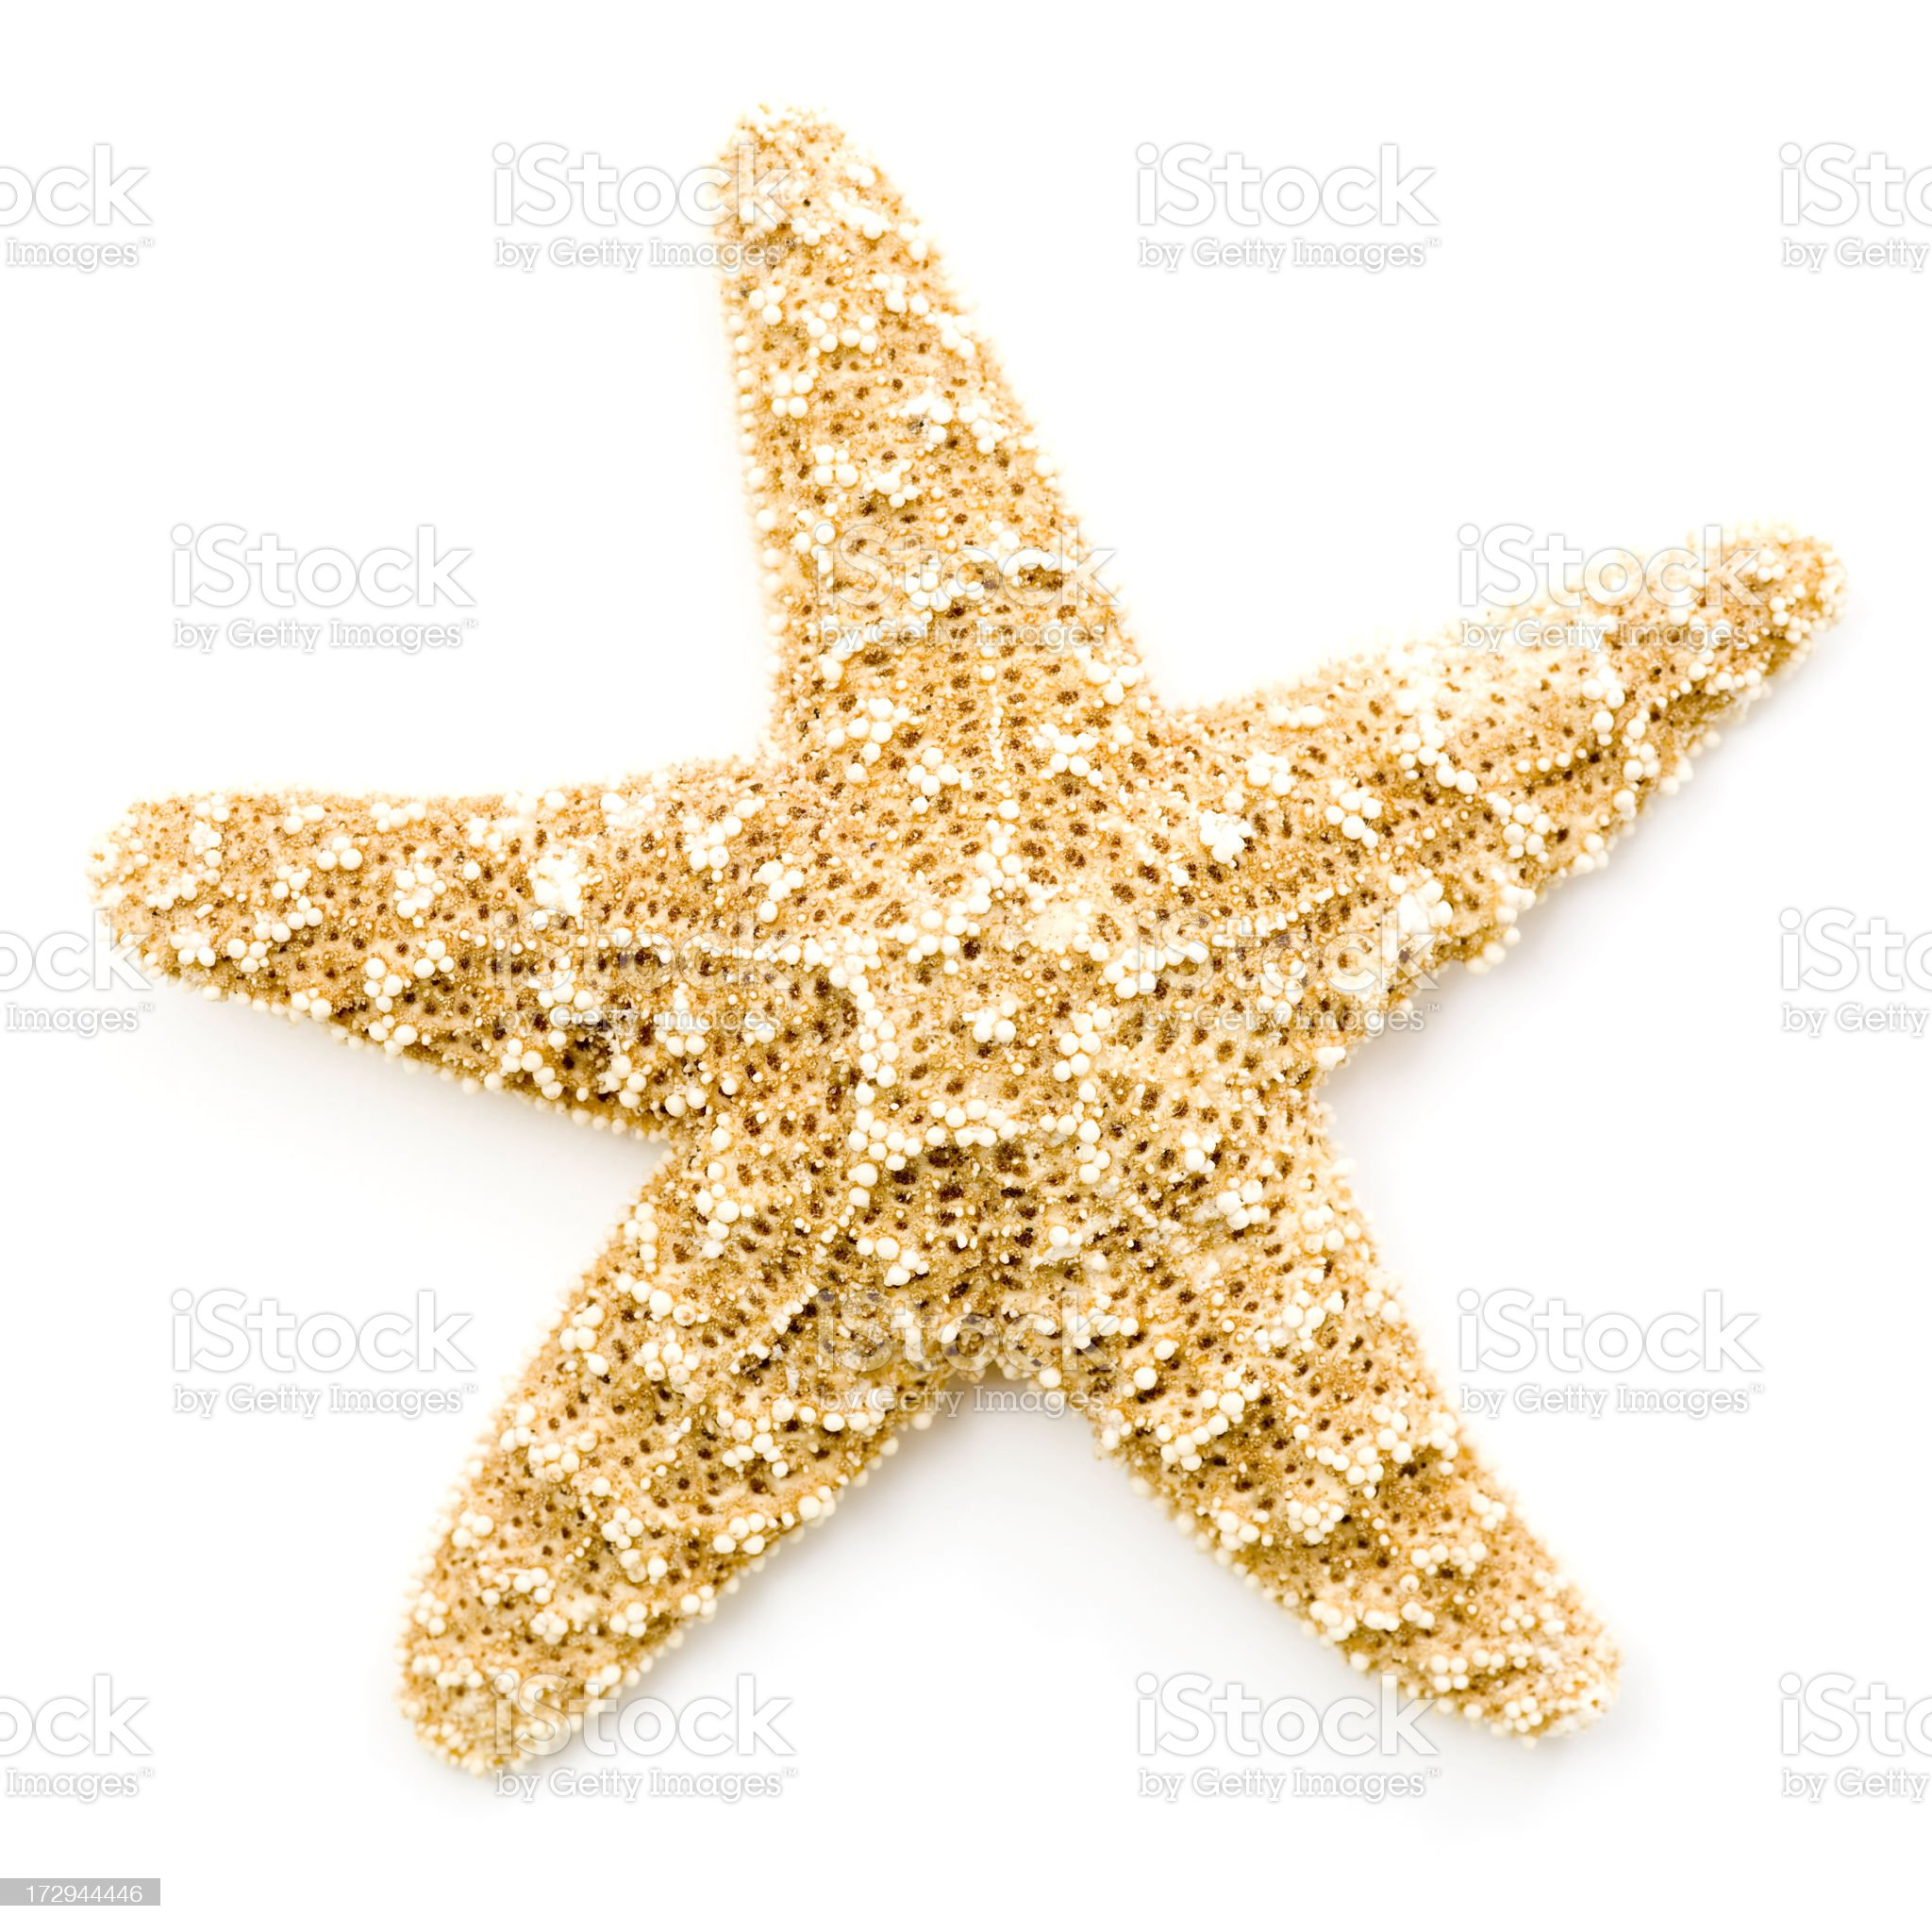 Starfish Isolated on White Background royalty-free stock photo